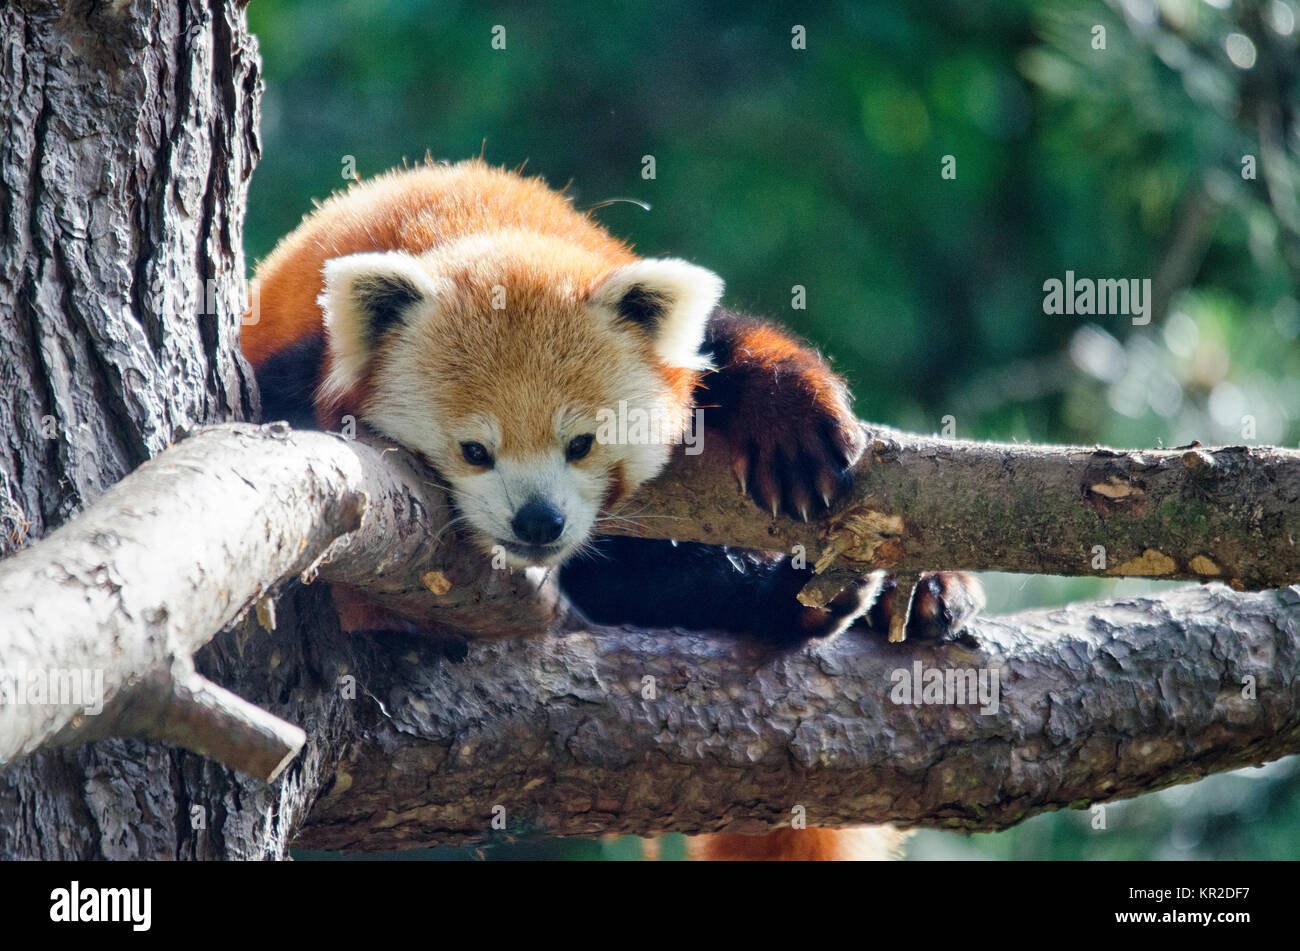 Endangered Red Panda in a Tree - Stock Image